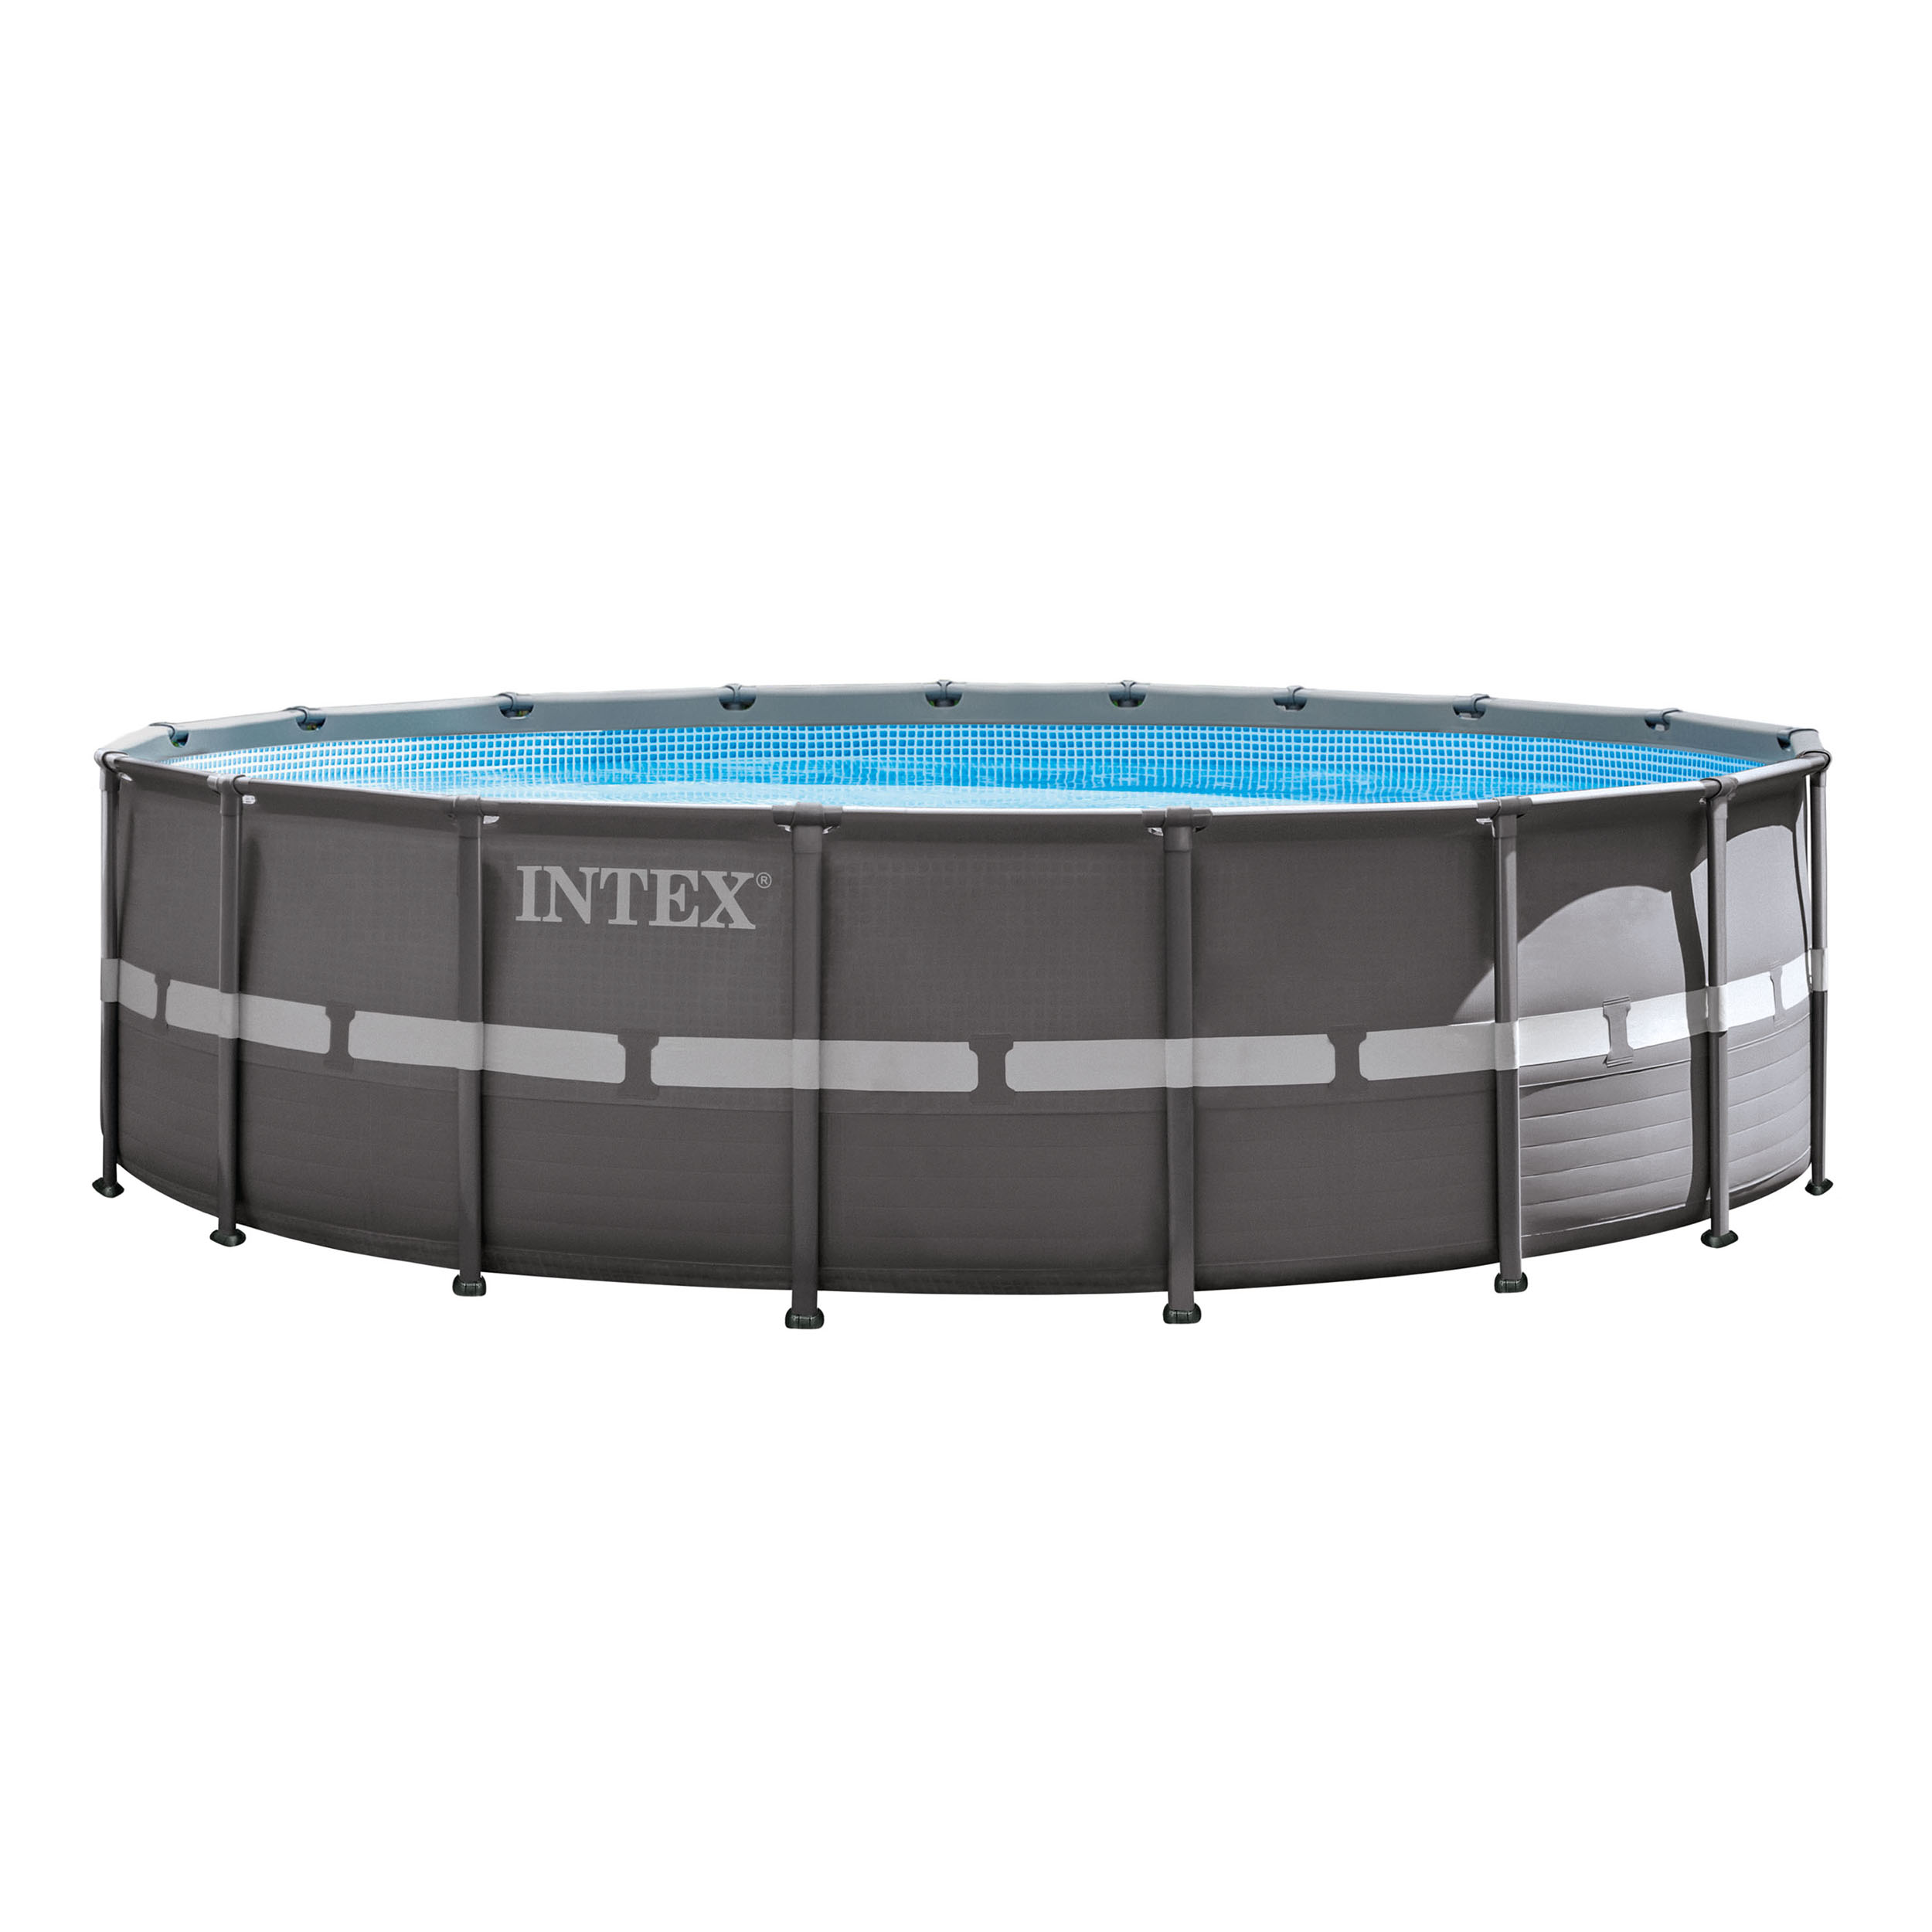 intex 18 39 x 52 ultra frame swimming pool set with 1600 gph sand filter pump ebay. Black Bedroom Furniture Sets. Home Design Ideas